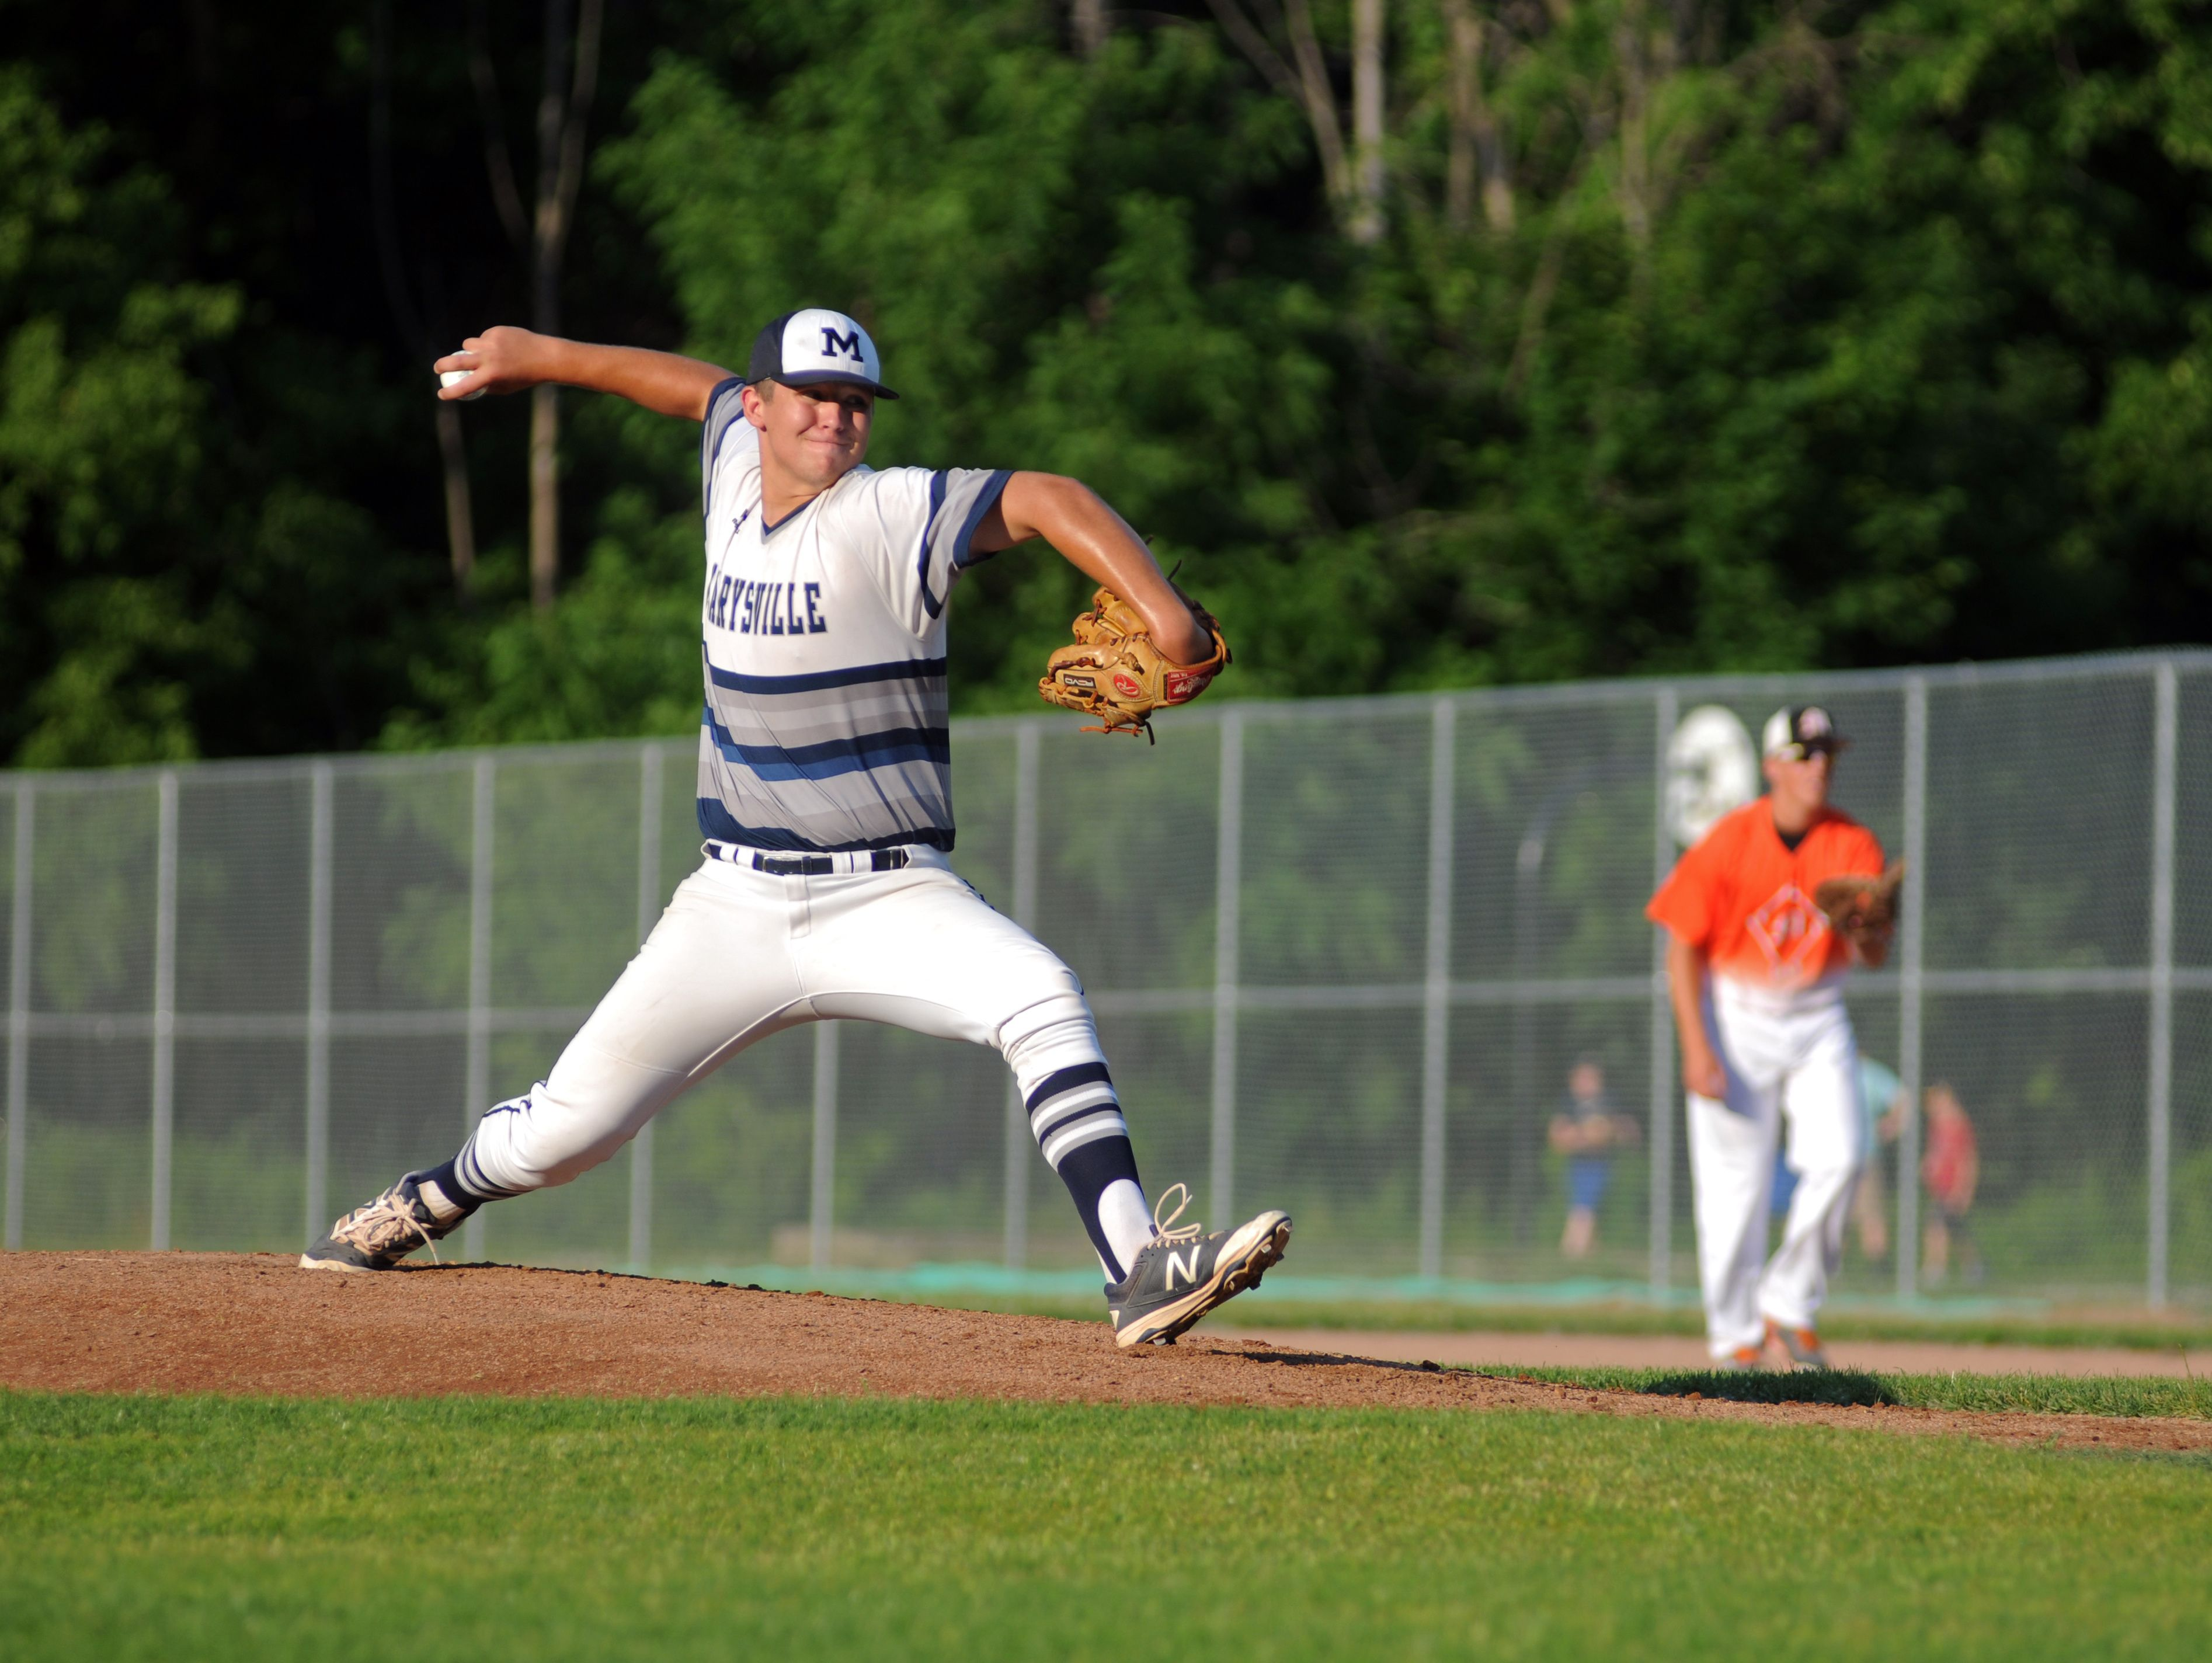 Marysvilles' Travis Disser throws in a pitch Monday, June 19, during the SC4 Blue Water Area All-Star Game at Sanborn Park.